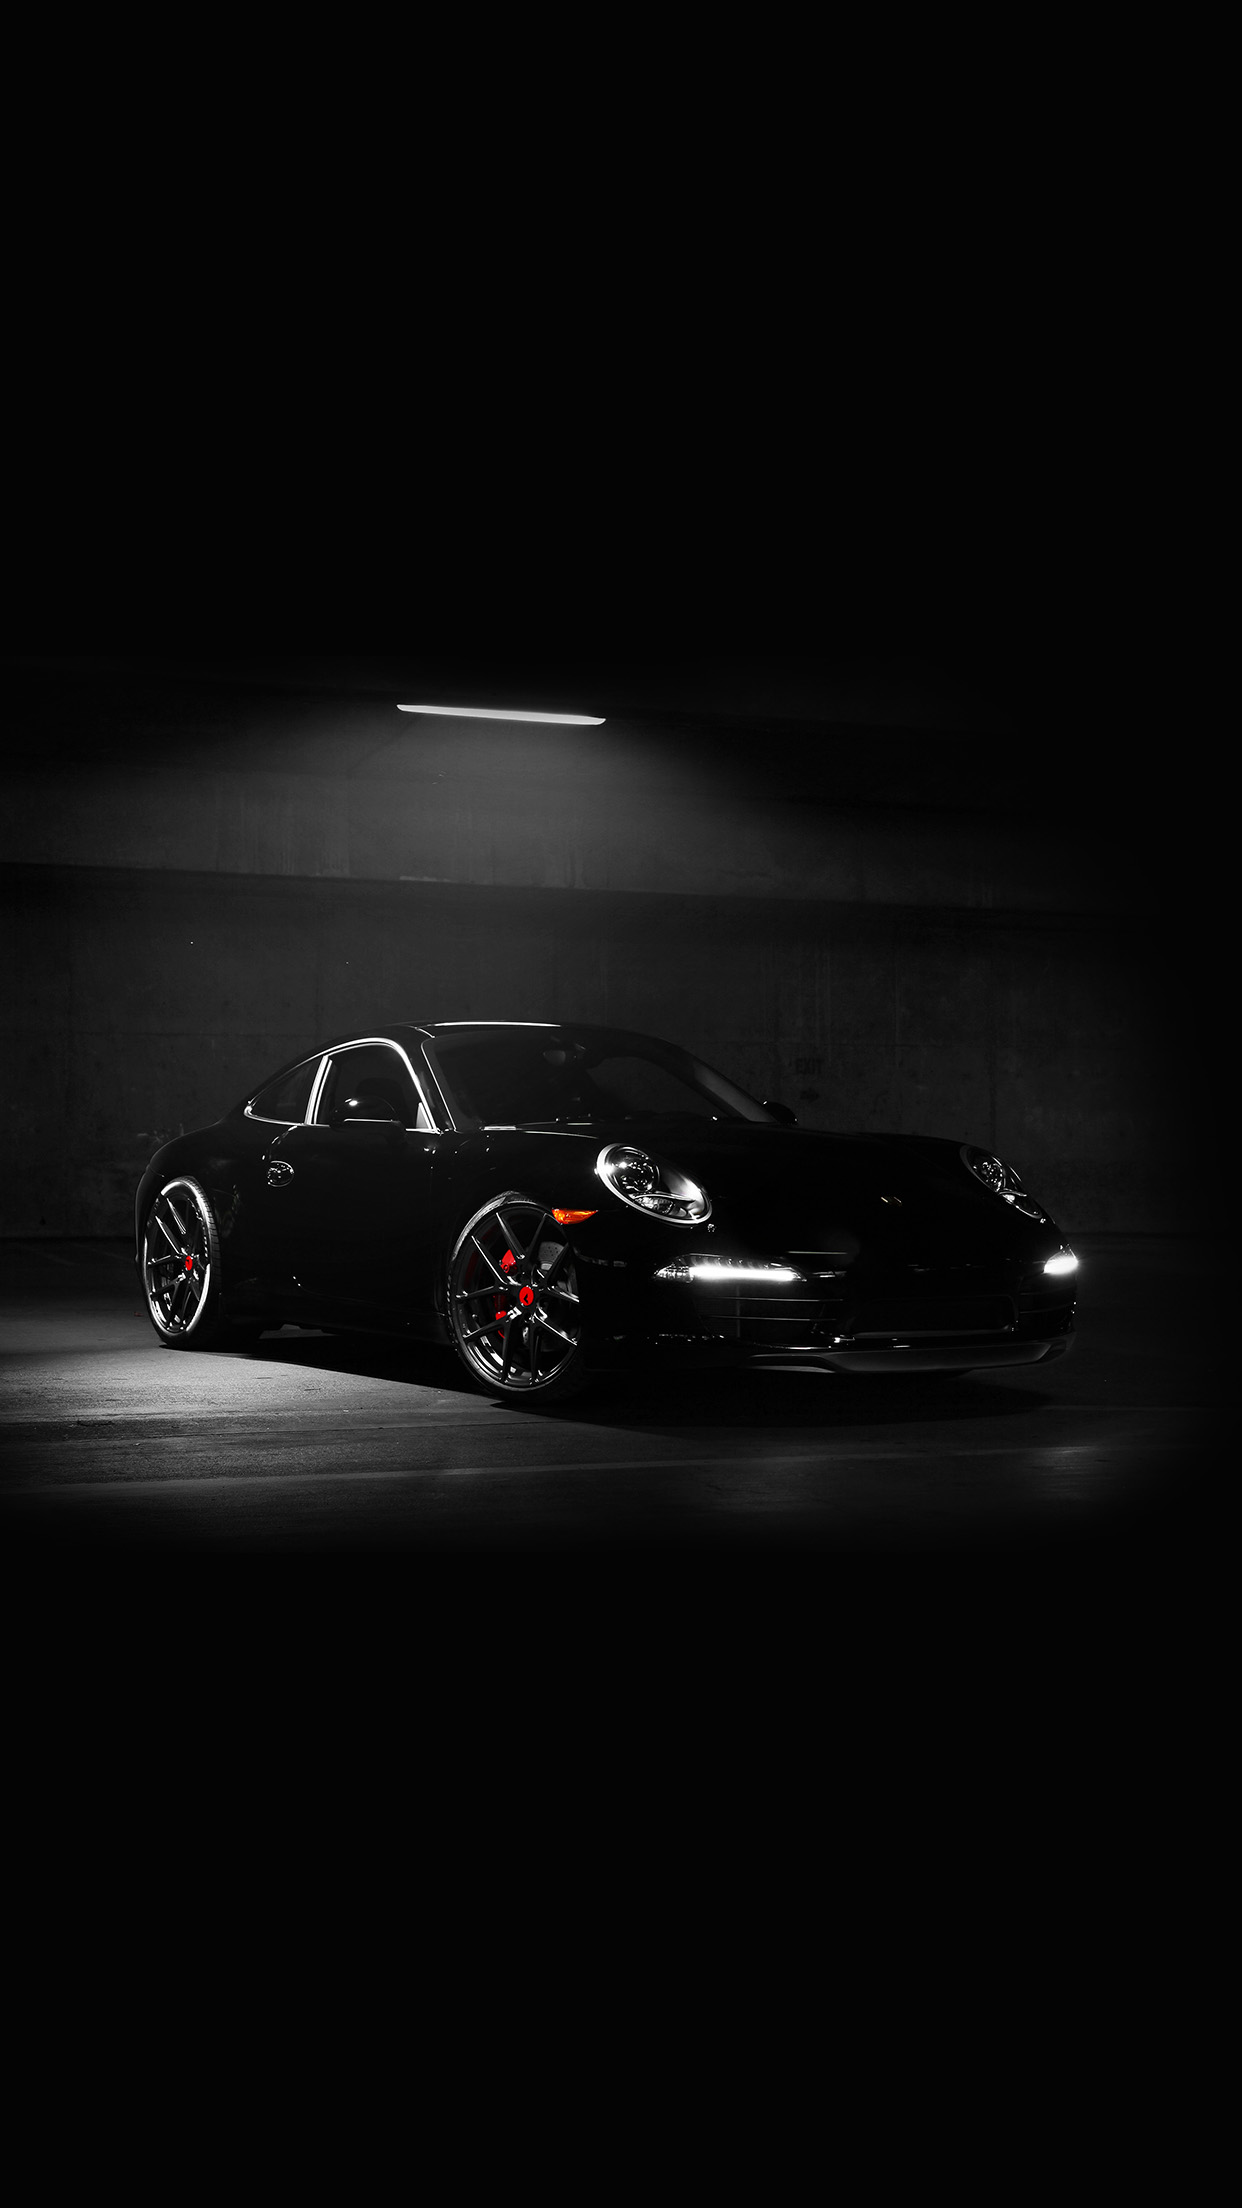 Av48 Porsche Illustration Art Super Car Black Dark Wallpaper